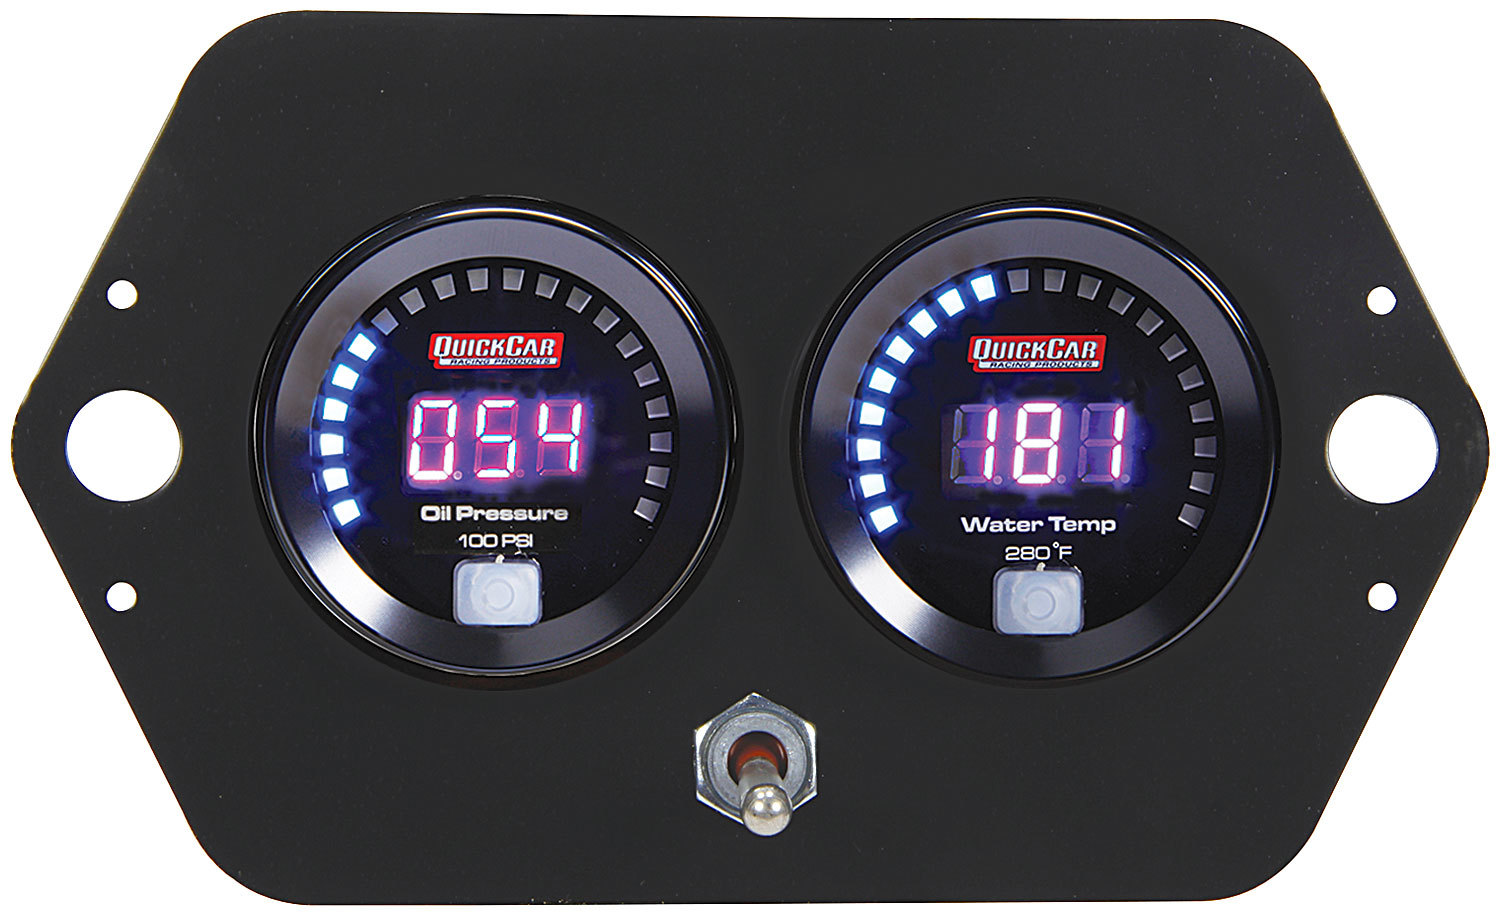 QuickCar 67-2005 Gauge Panel Assembly, Competition, Oil Pressure / Water Temperature, Black Face, Kit